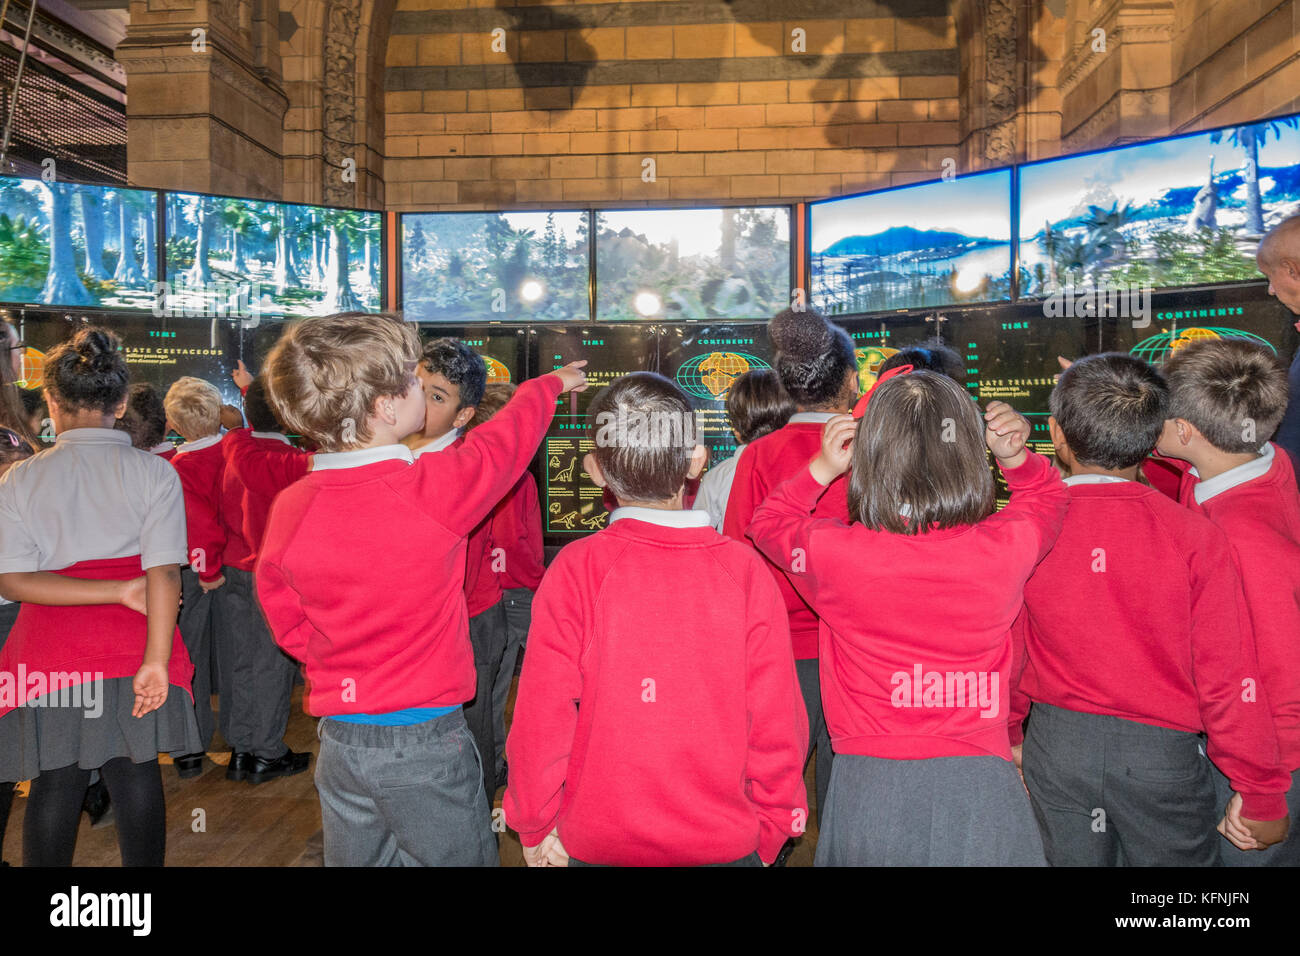 Excited schoolchildren in uniform, on a school trip, viewing information displays at the Natural History Museum - Stock Image